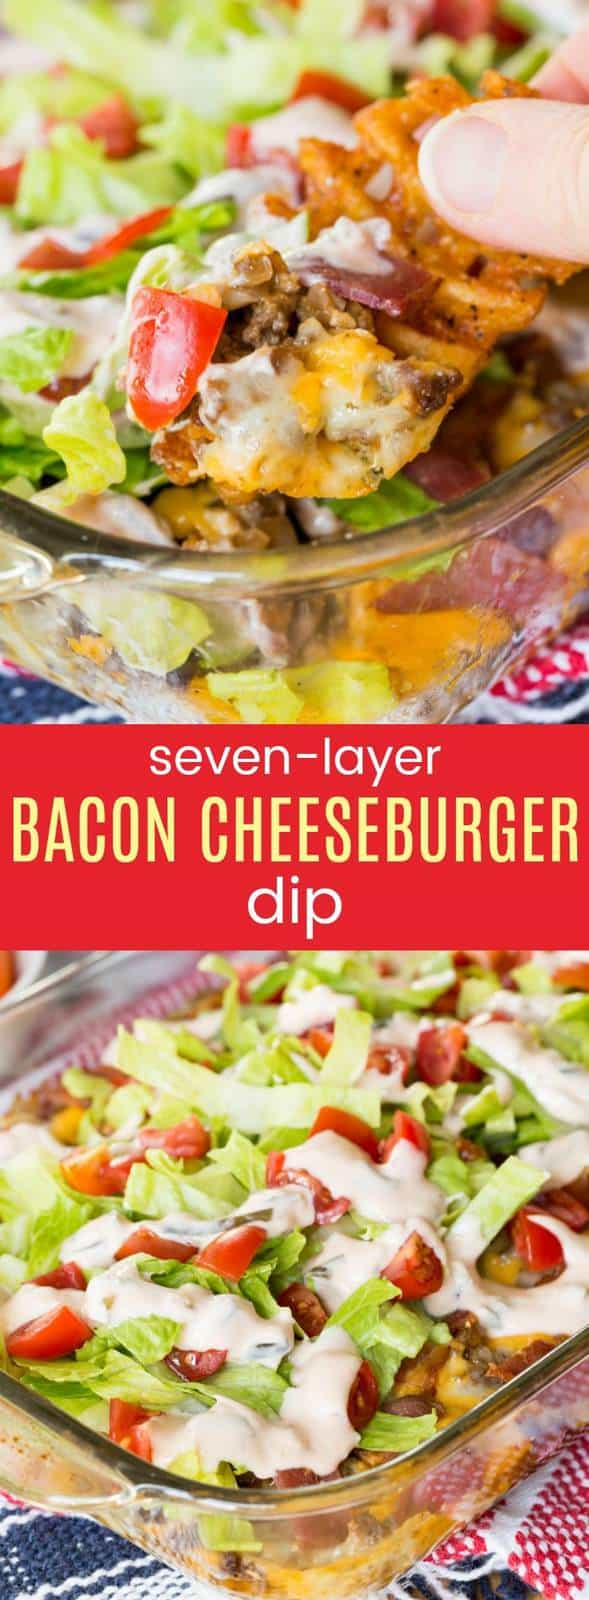 Seven-Layer Bacon Cheeseburger Dip recipe from cupcakesandkalechips.com